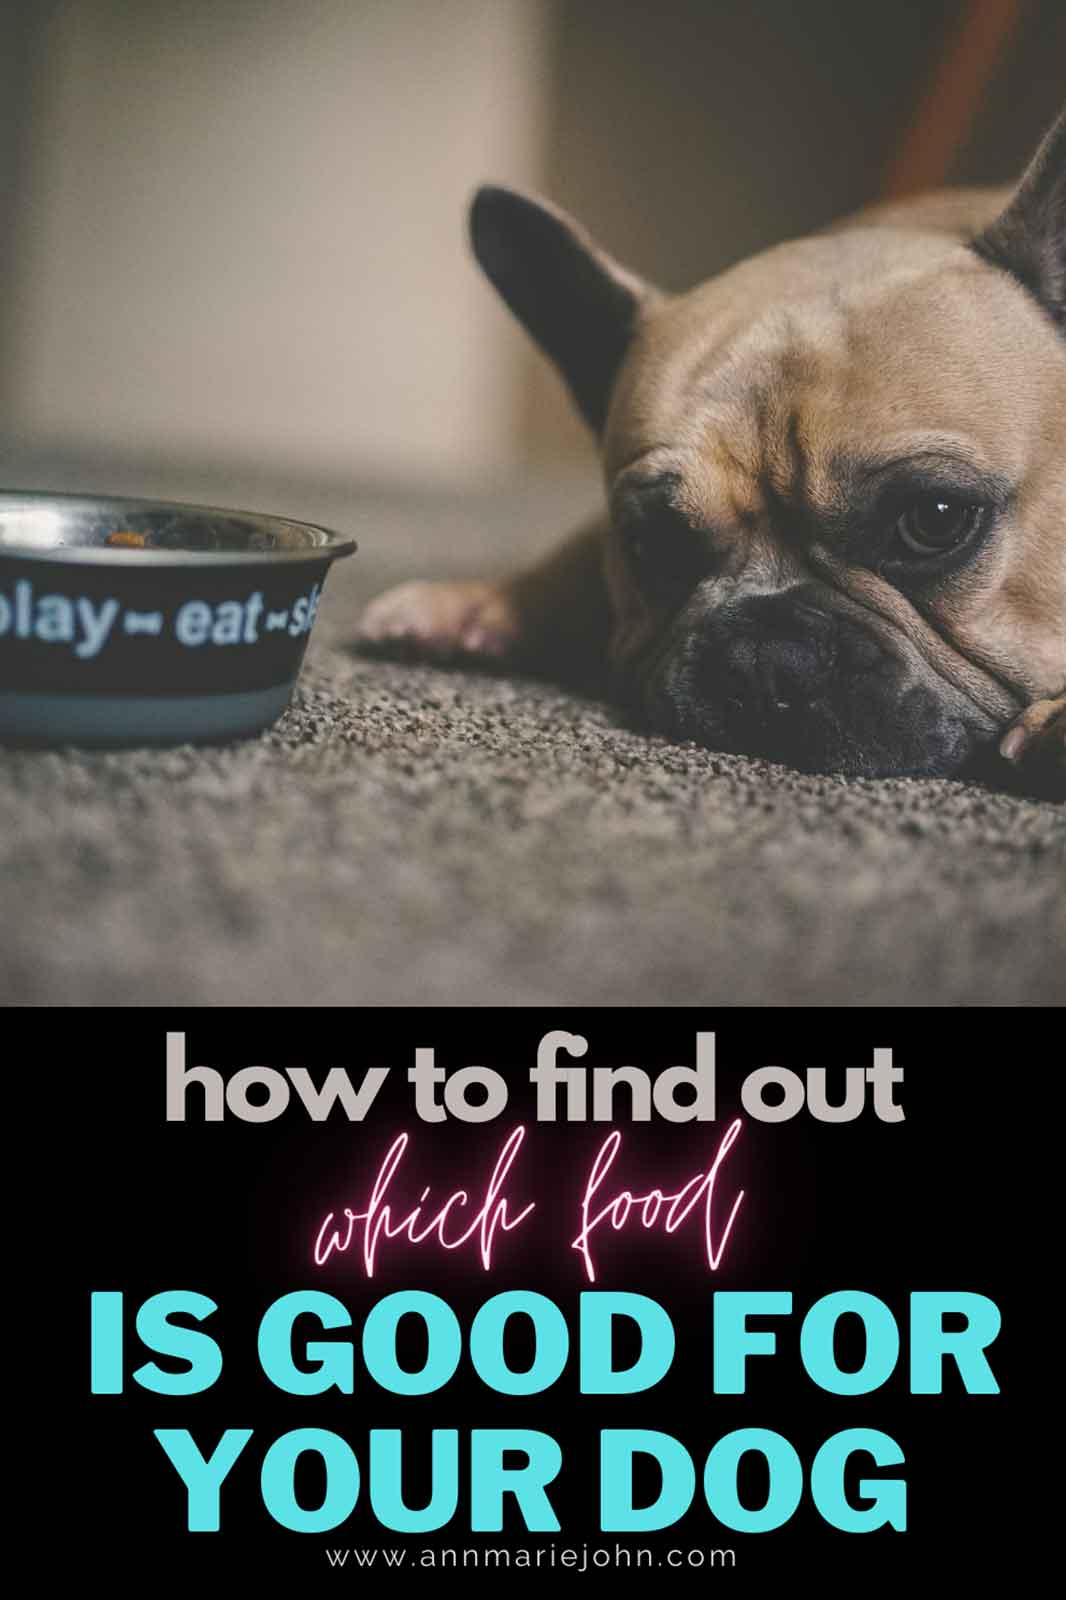 How to Find out Which Food Is Good for Your Dog